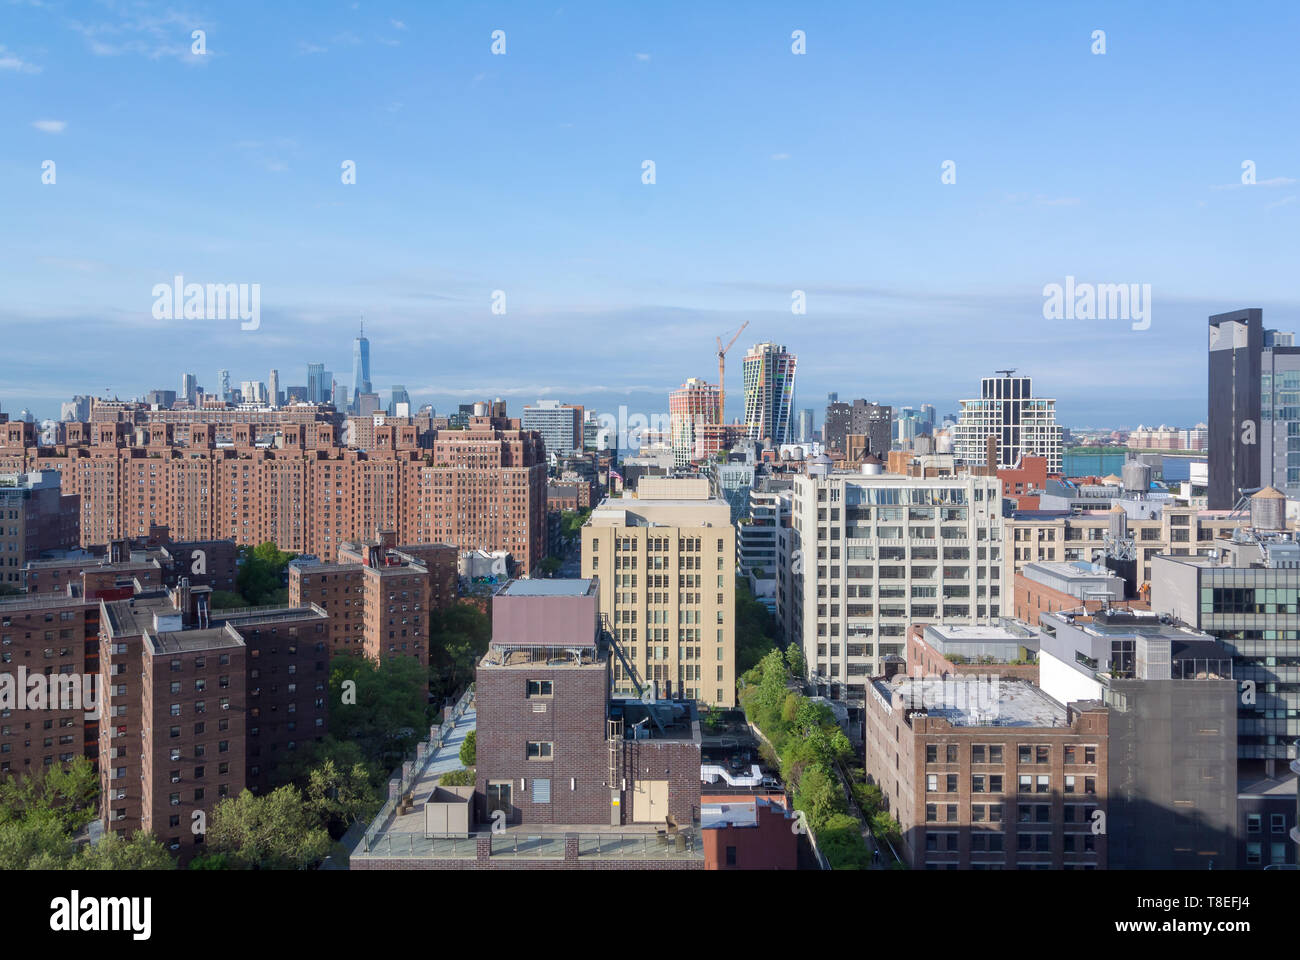 Aerial view of Chelsea district, New York, NY, United states of america, USA Stock Photo